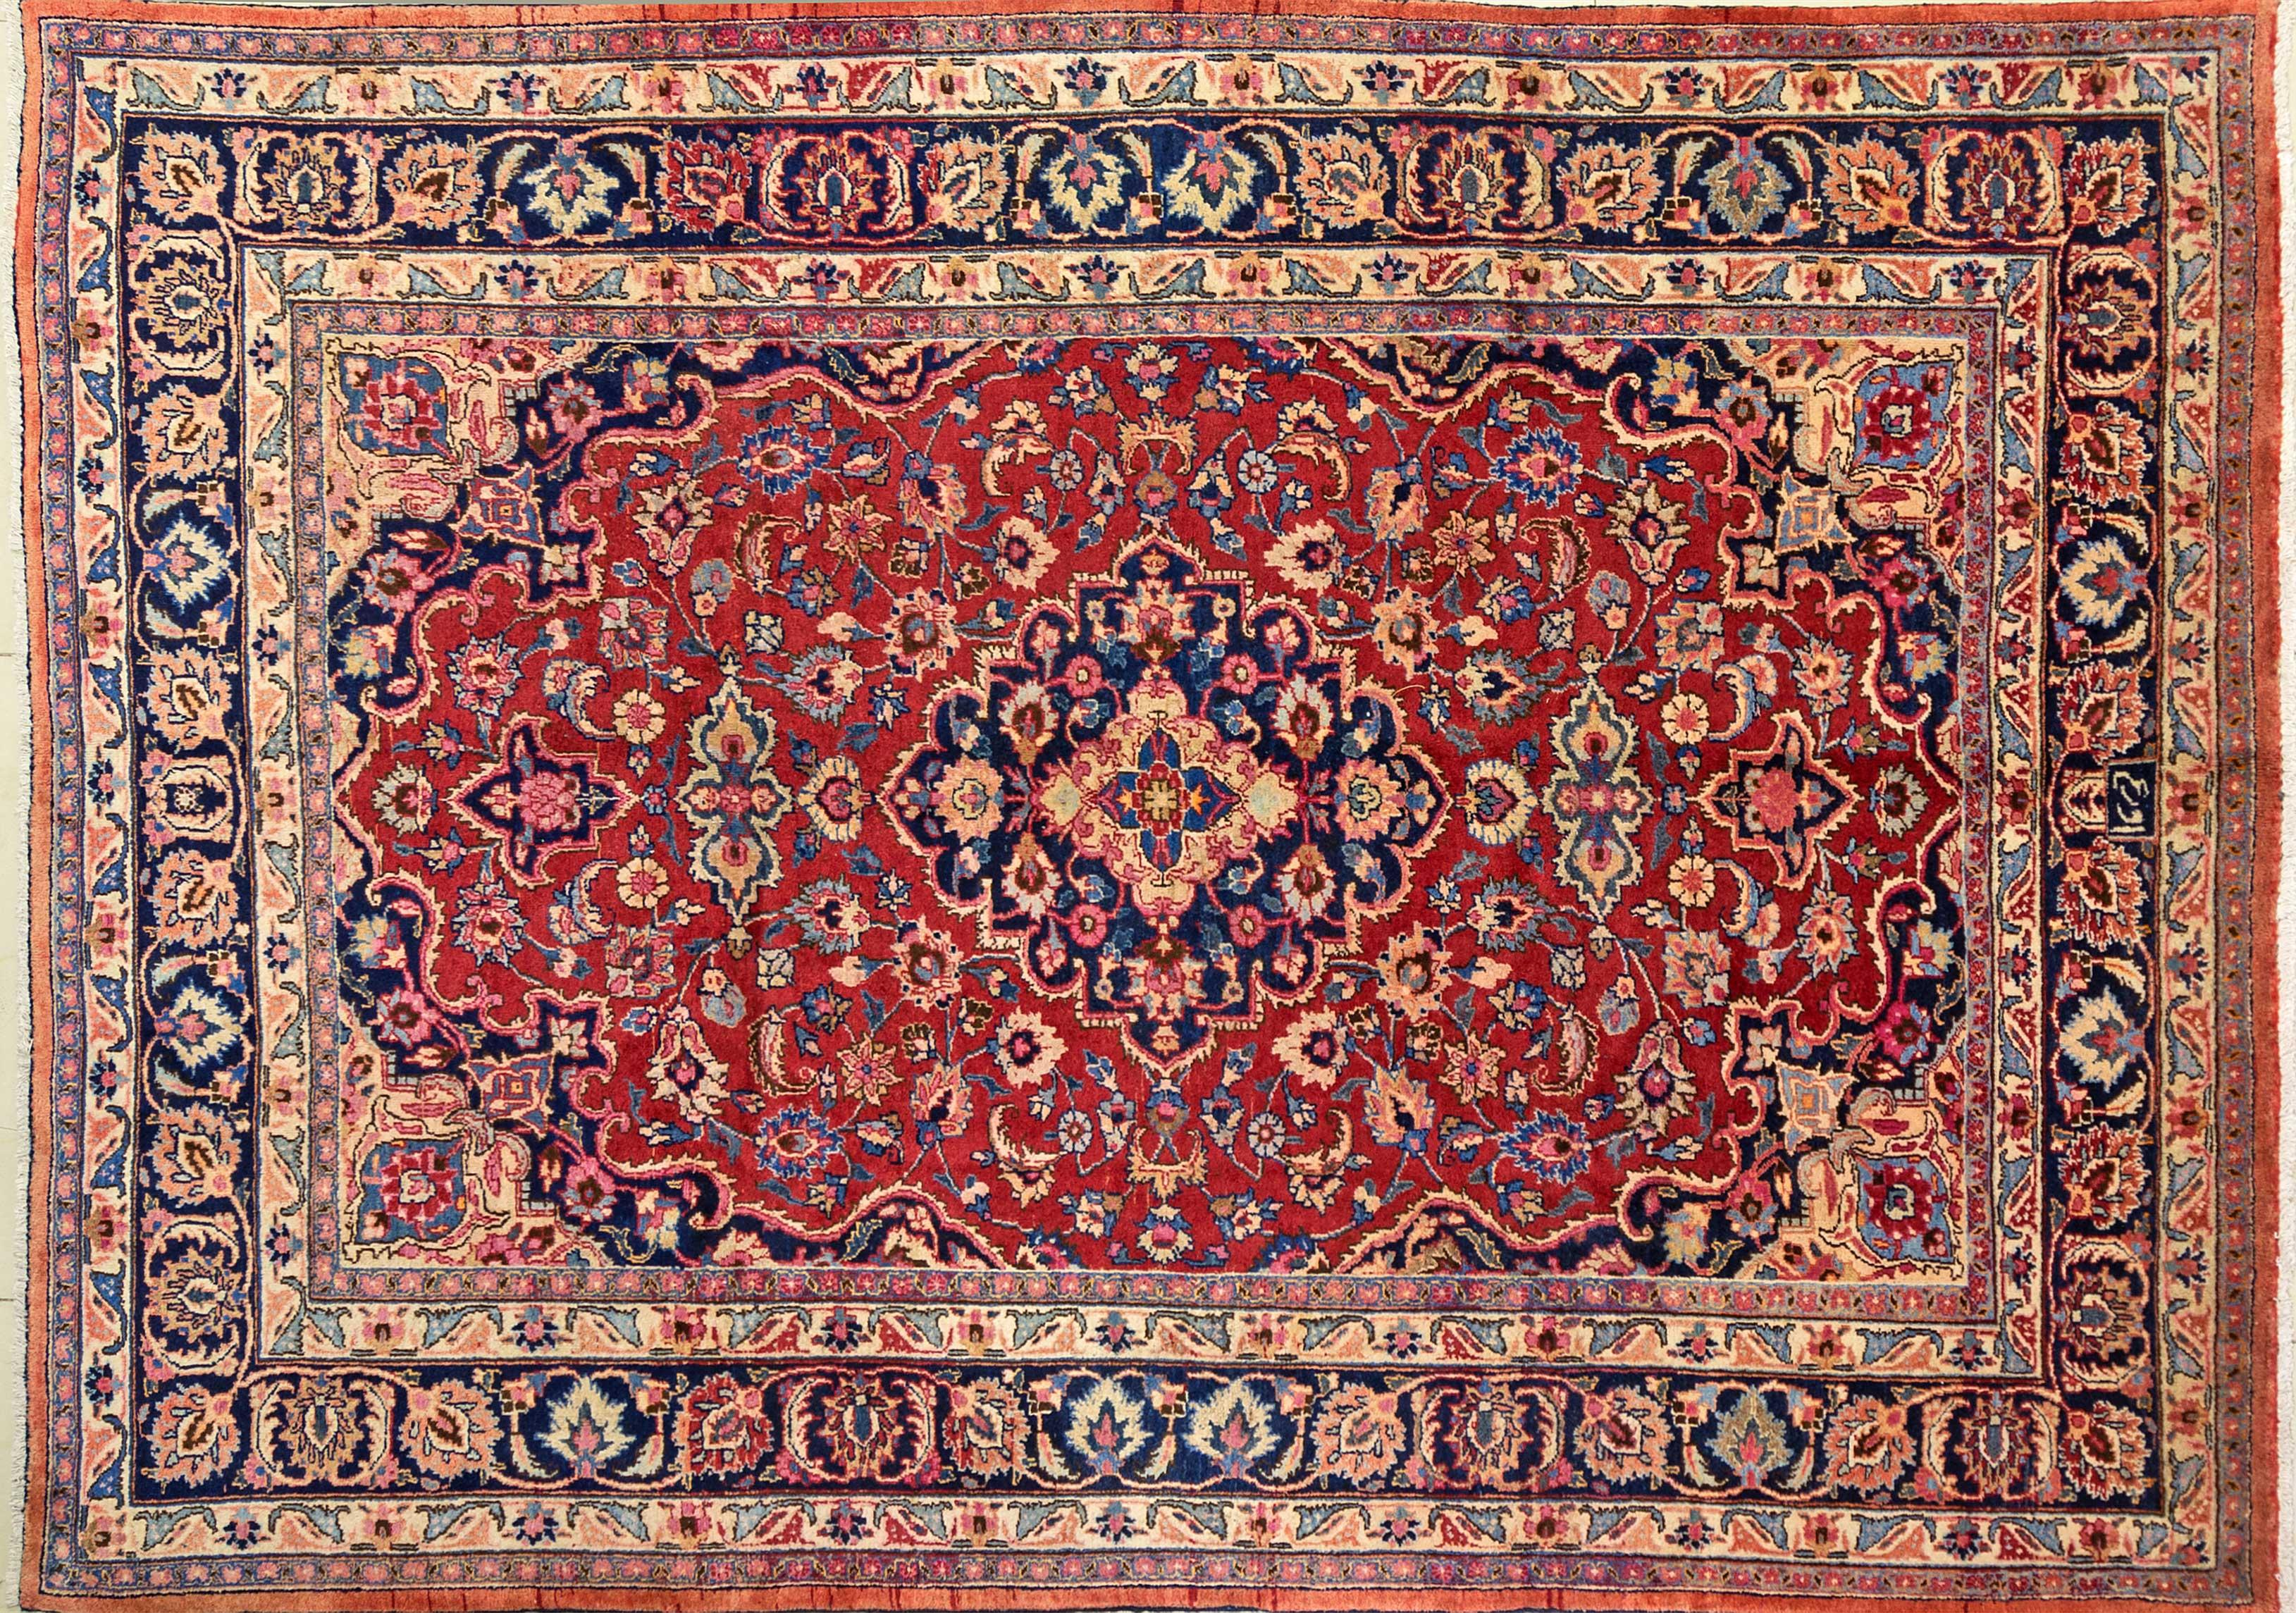 A Persian Hand Knotted Mashad Carpet, 280 x 200